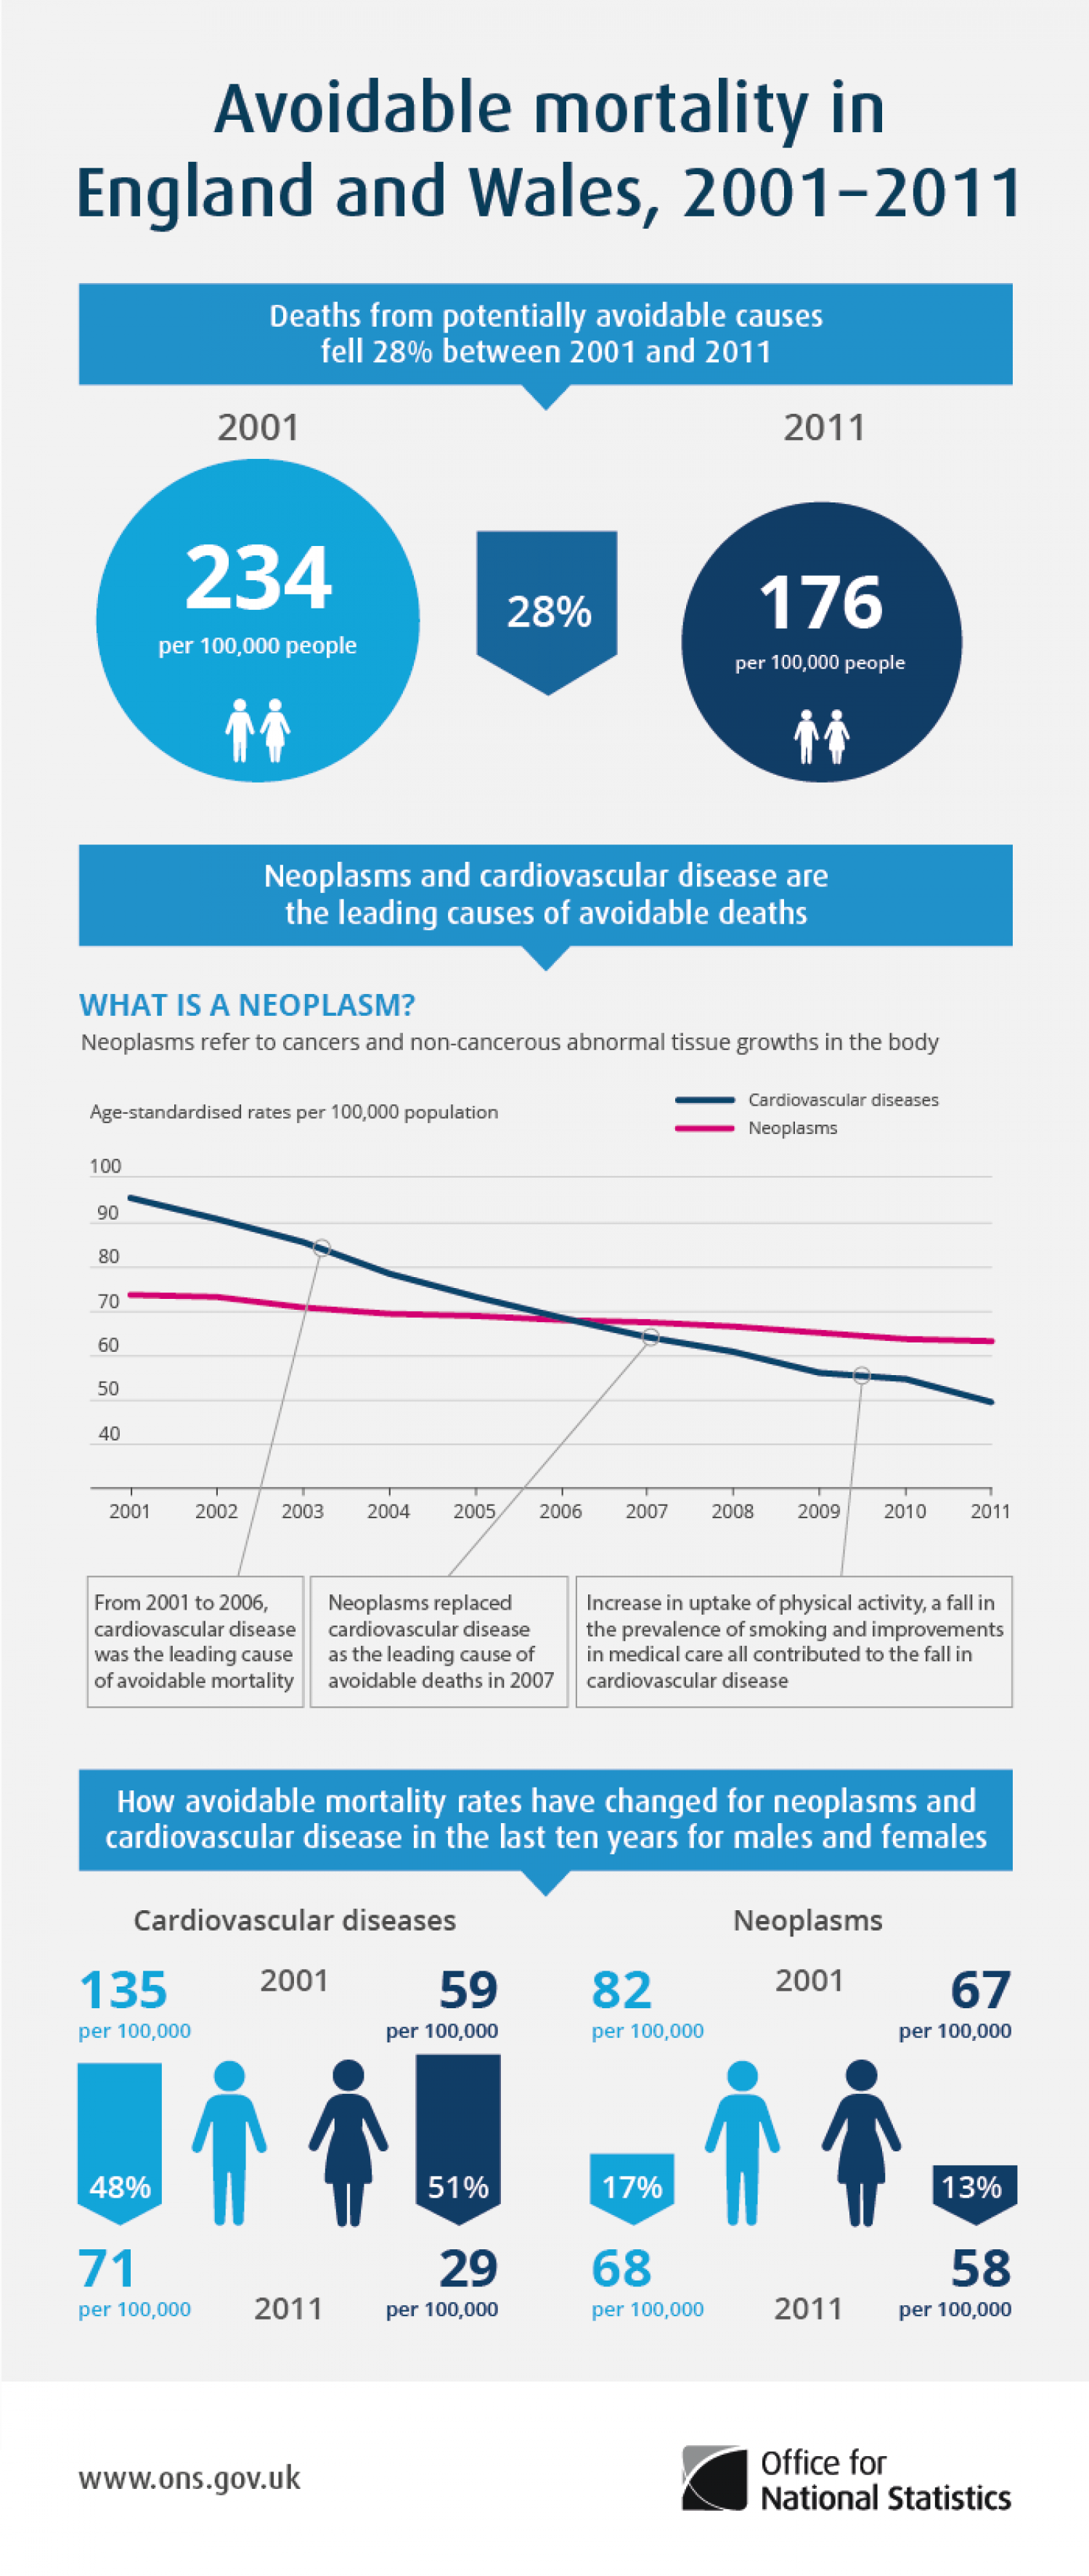 Avoidable mortality in England and Wales, 2001 to 2011 Infographic